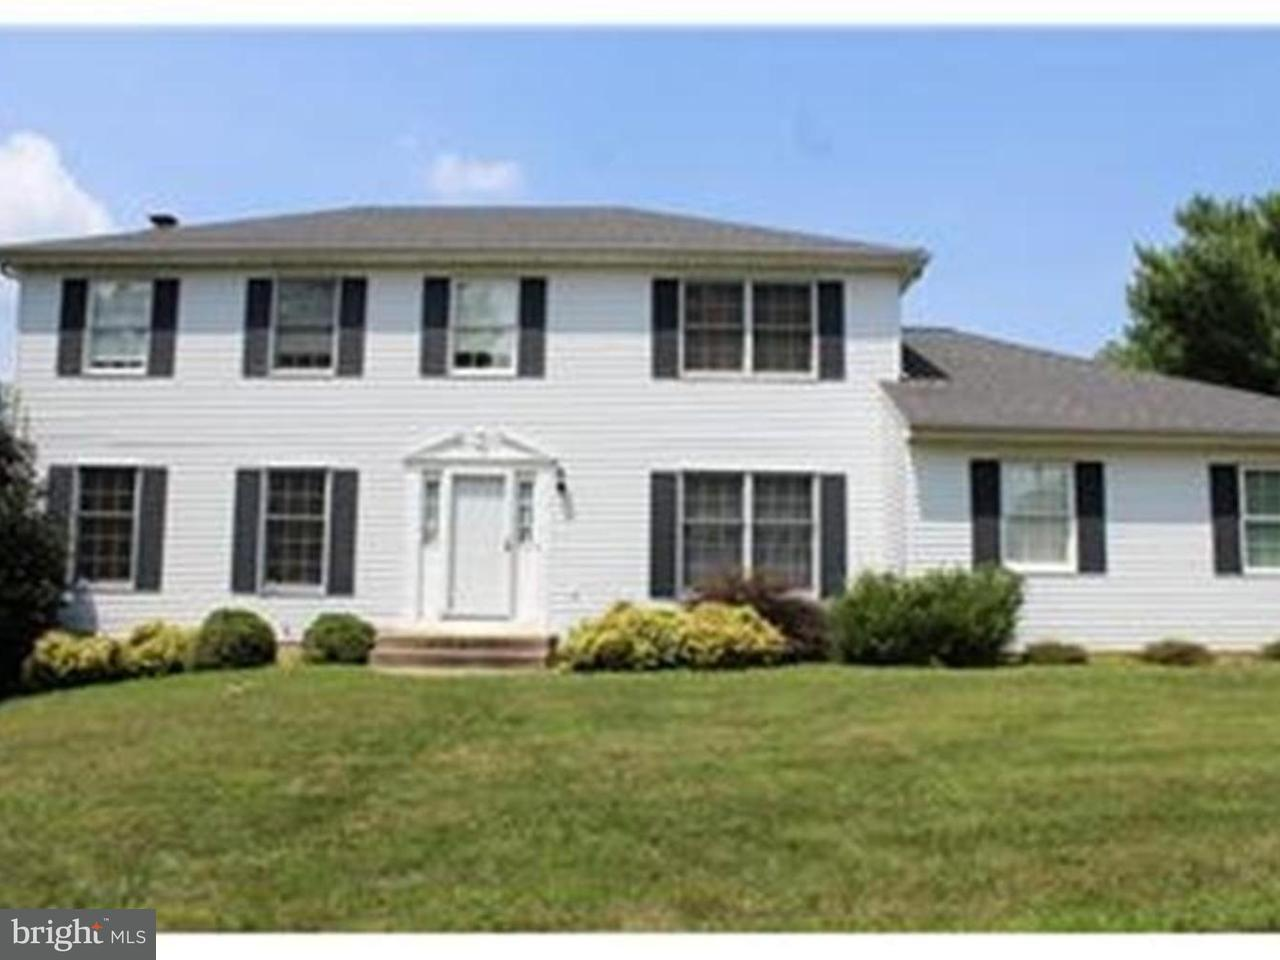 Single Family Home for Rent at 110 LENA Drive Newark, Delaware 19711 United States